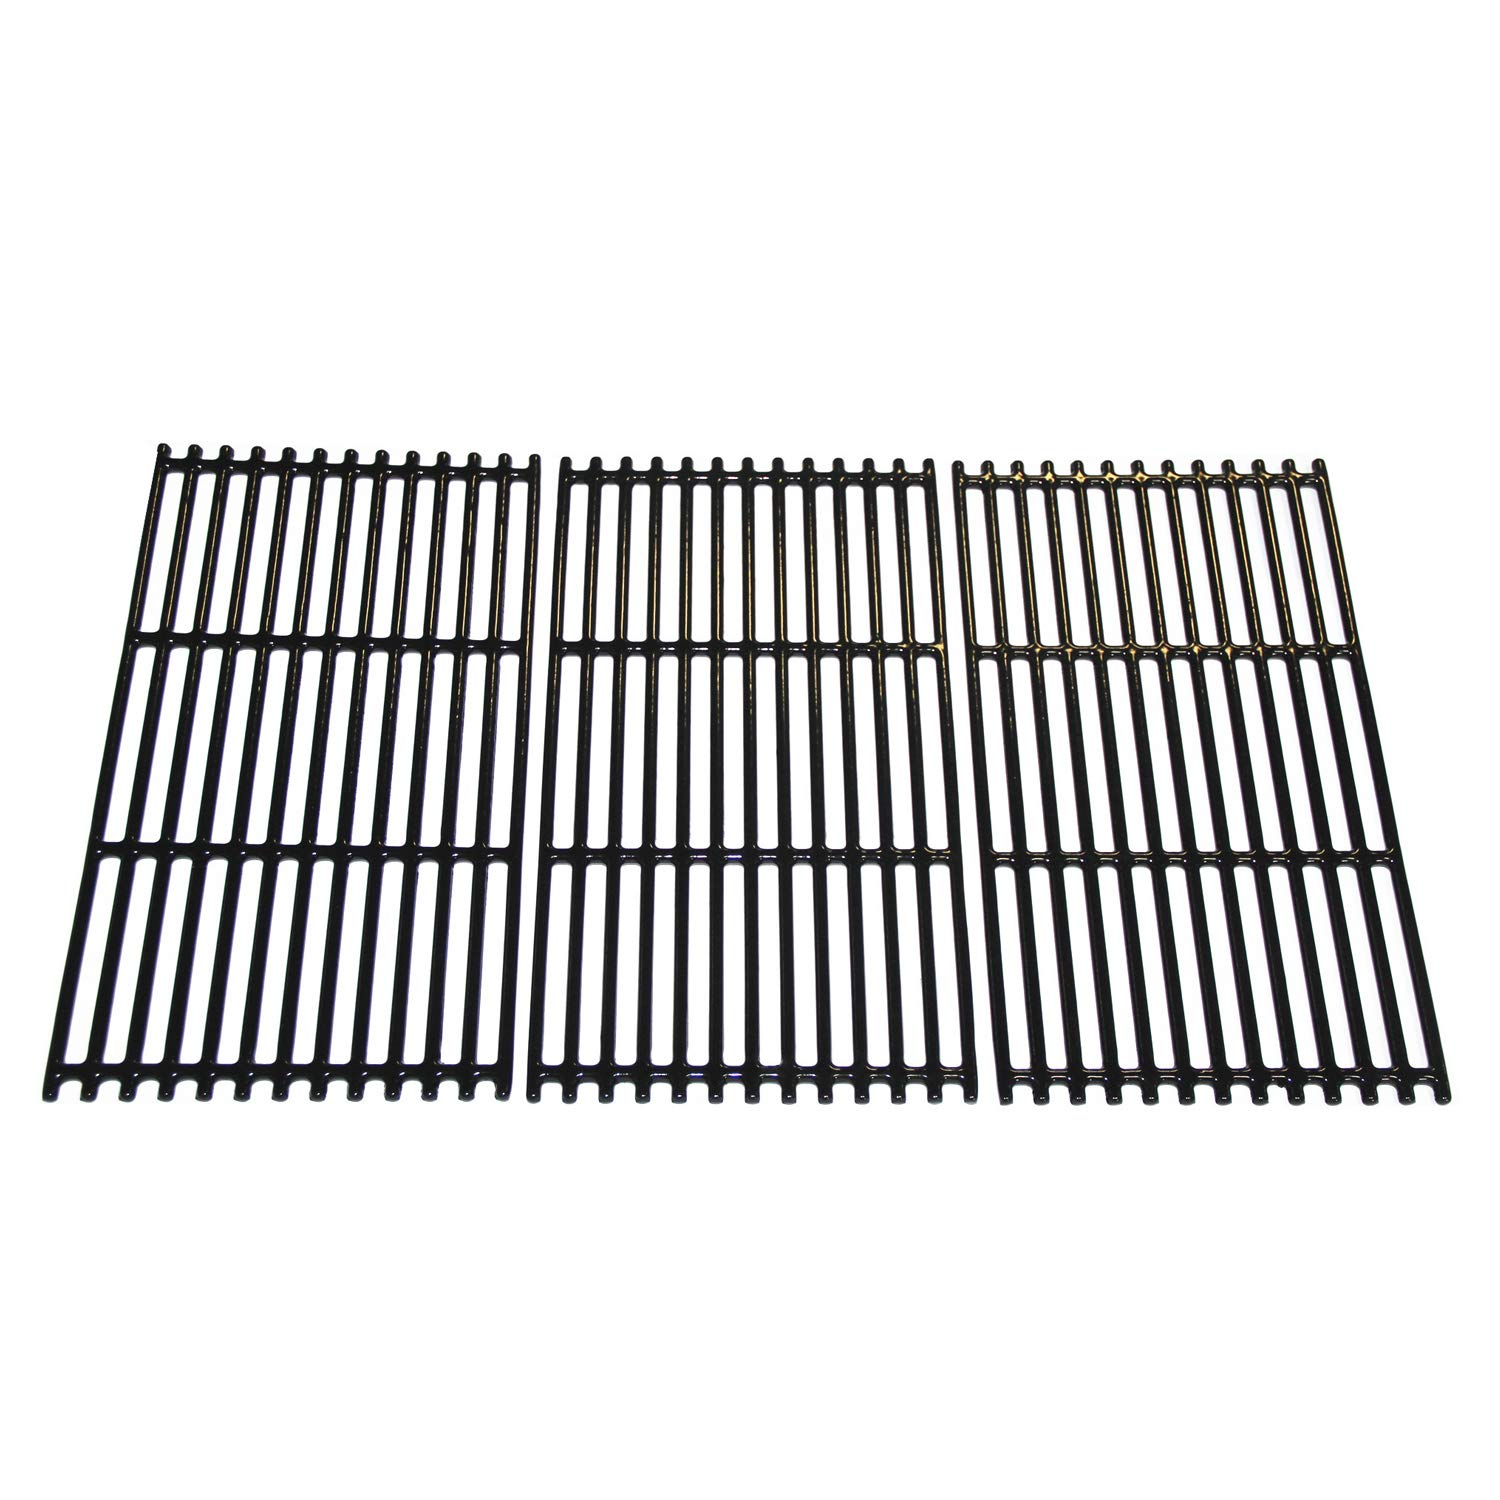 Hongso 17 1/16 inch Porcelain Coated Cast Iron Grill Grates Replacement for Charbroil 463242716, 466242715, 463242715, 466242815 Gas Grill, G533-0009-W1, Lowe's # 606682, Walmart # 555179228 (PCB004)